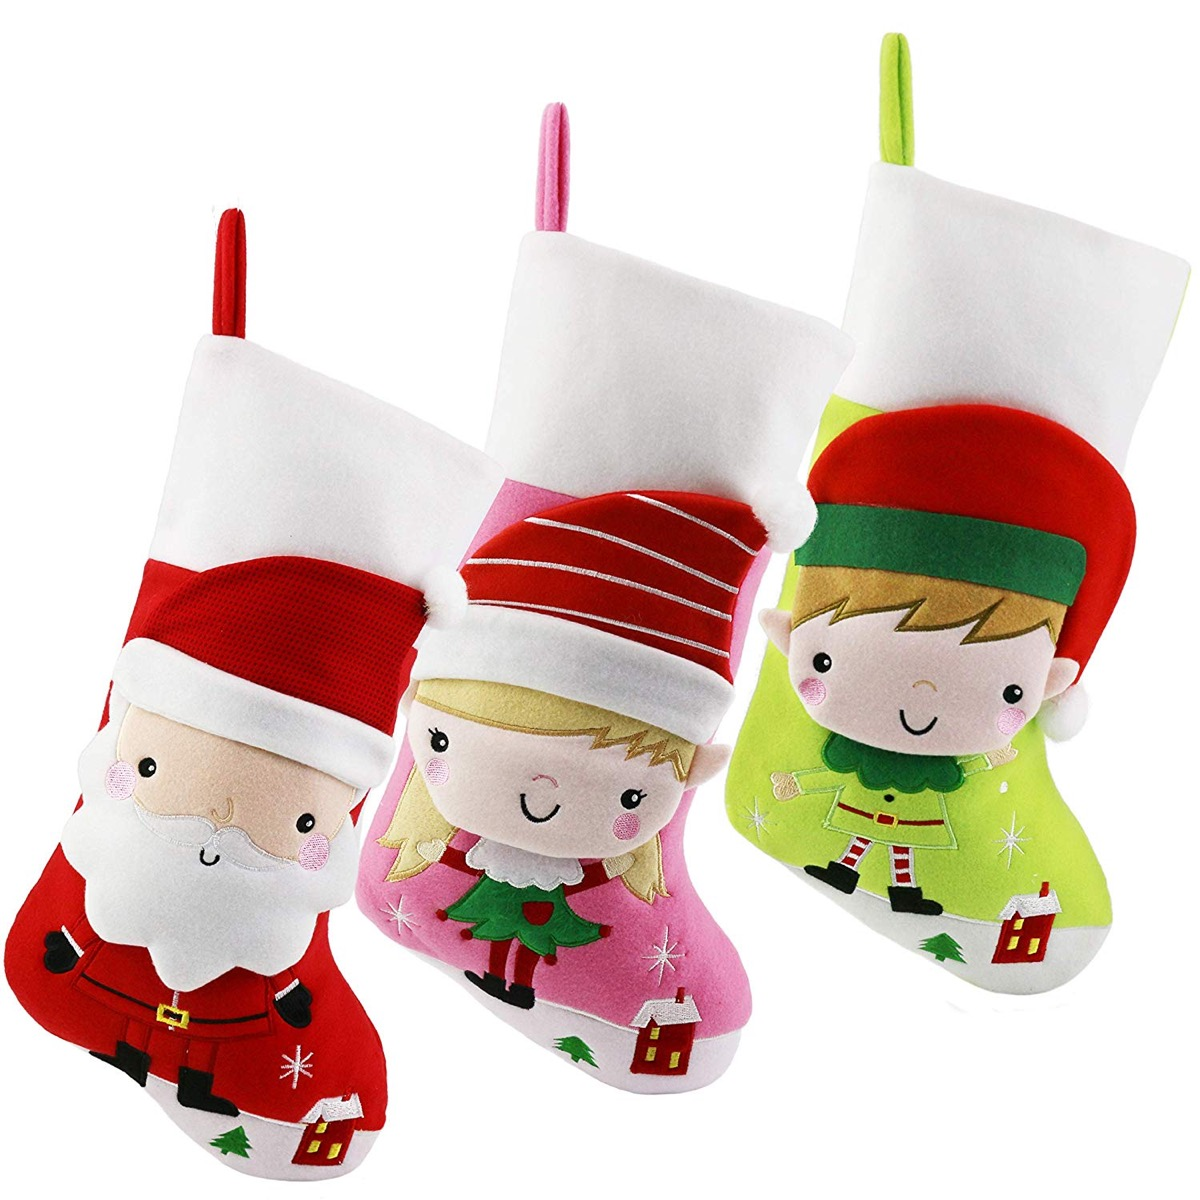 white stockings with santa and cartoon elves on them